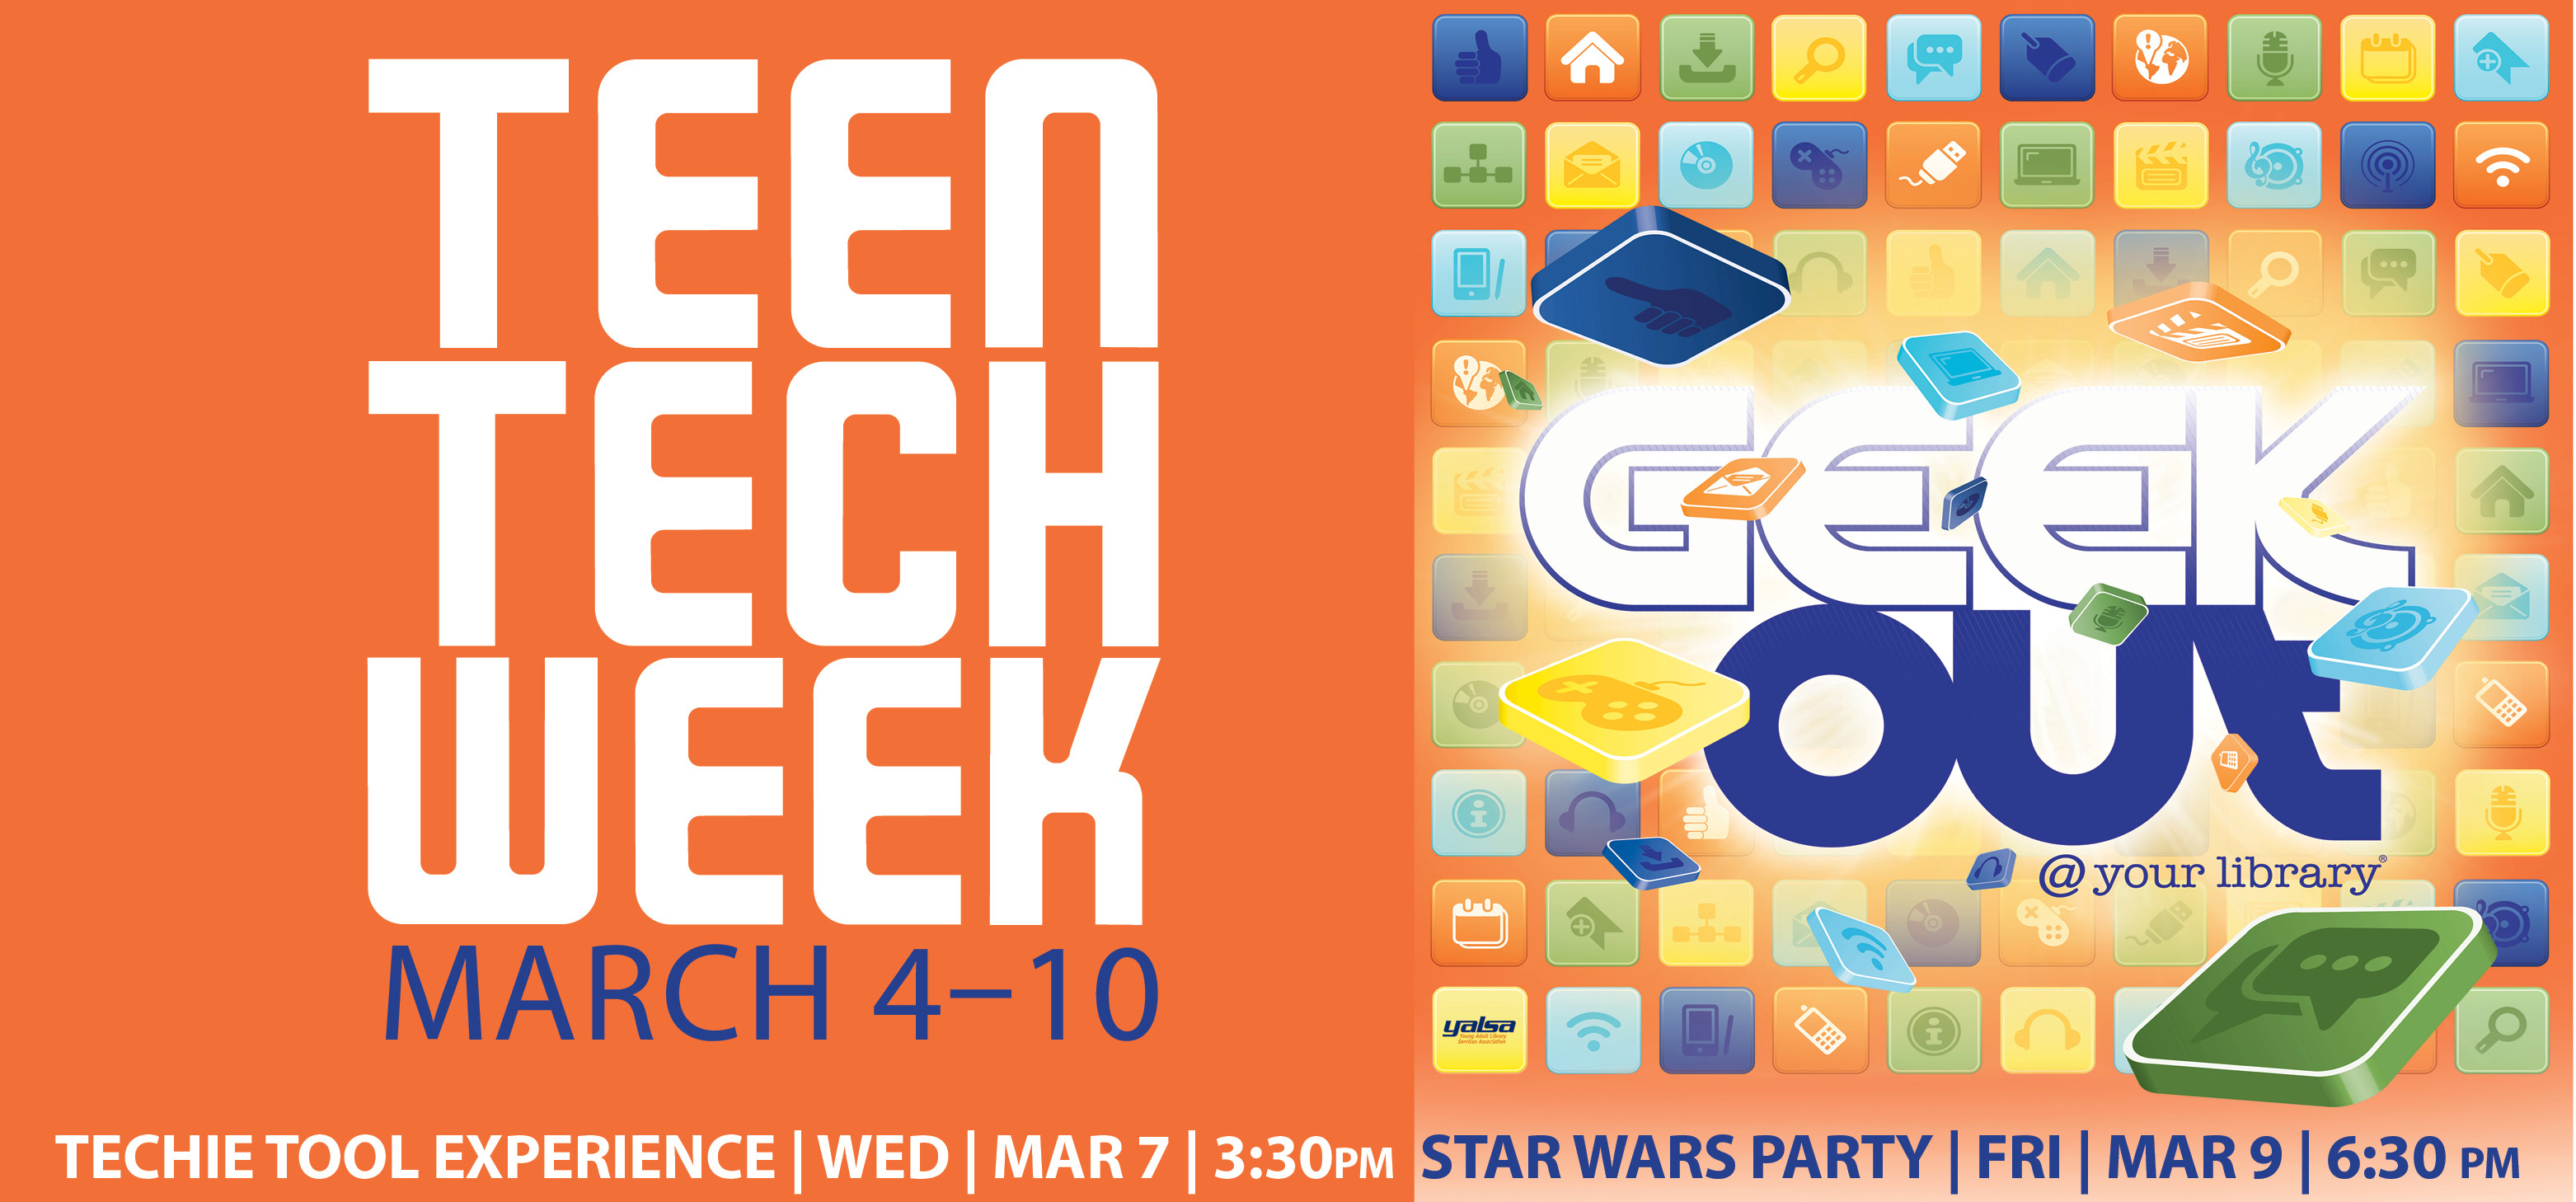 Celebrating Teen Tech Week at the library March 4-10